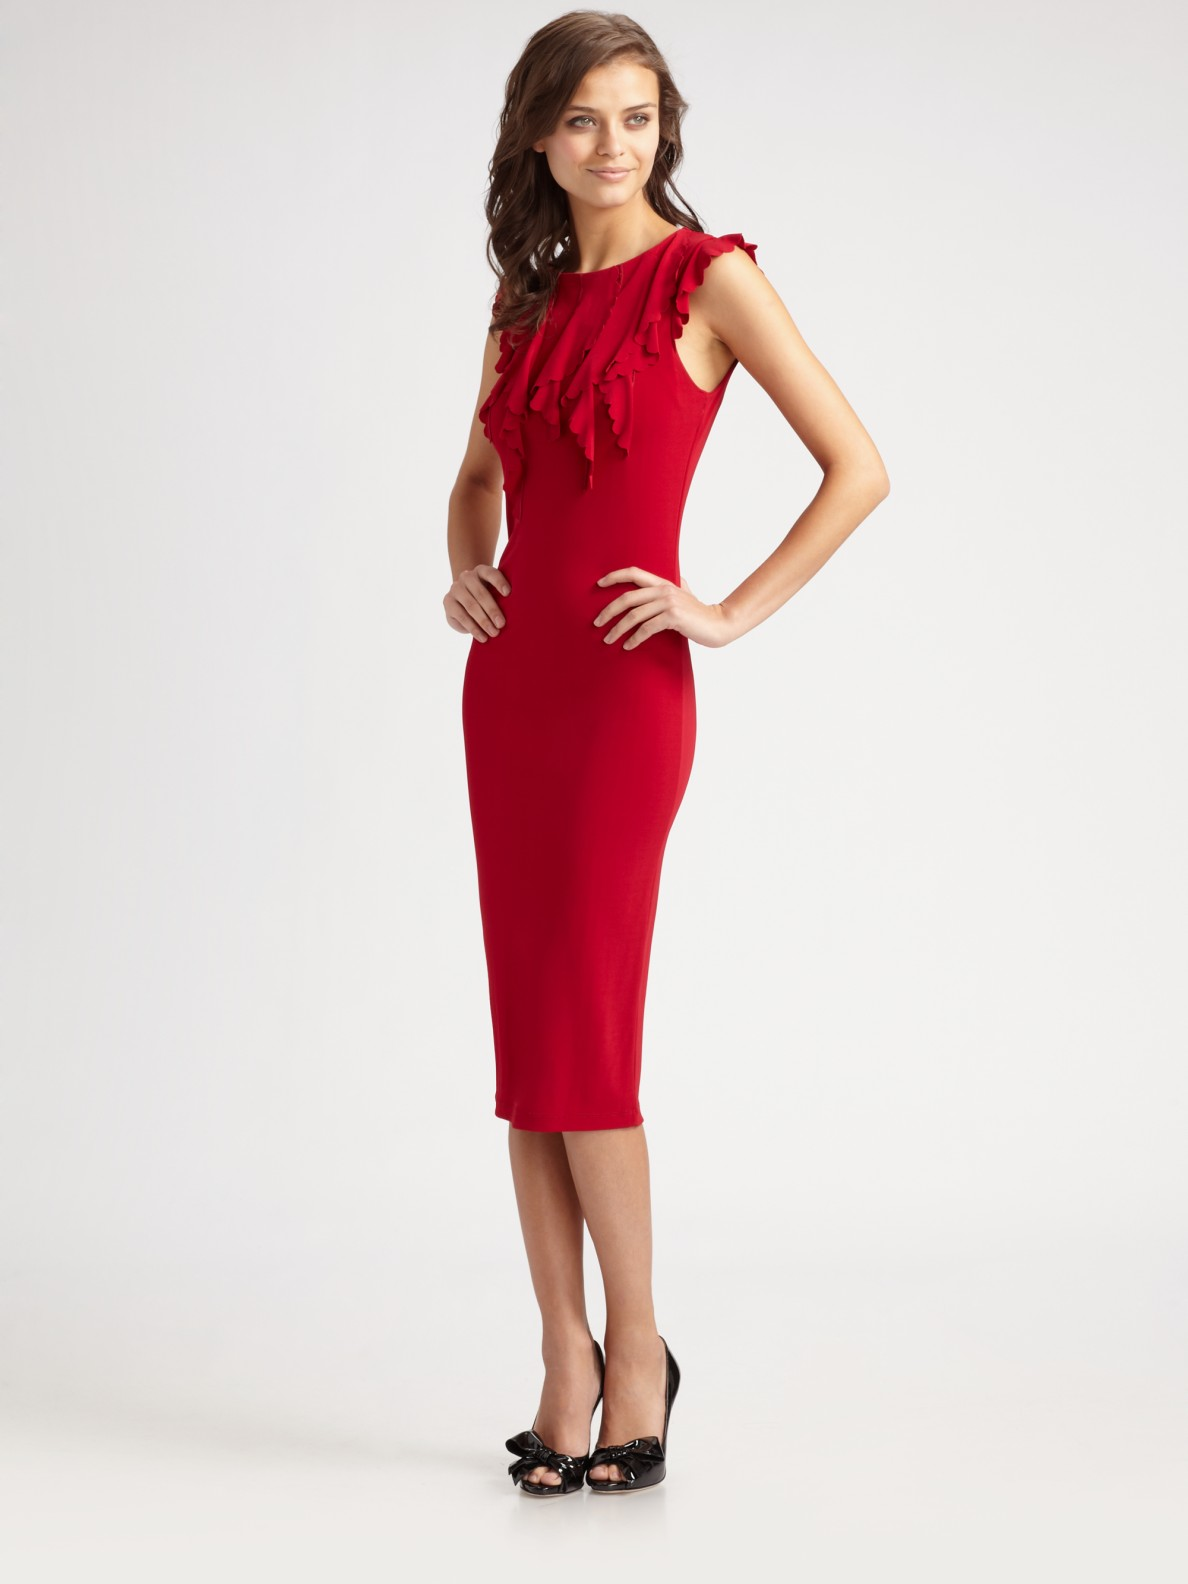 Red valentino Ruffle-top Dress in Red | Lyst